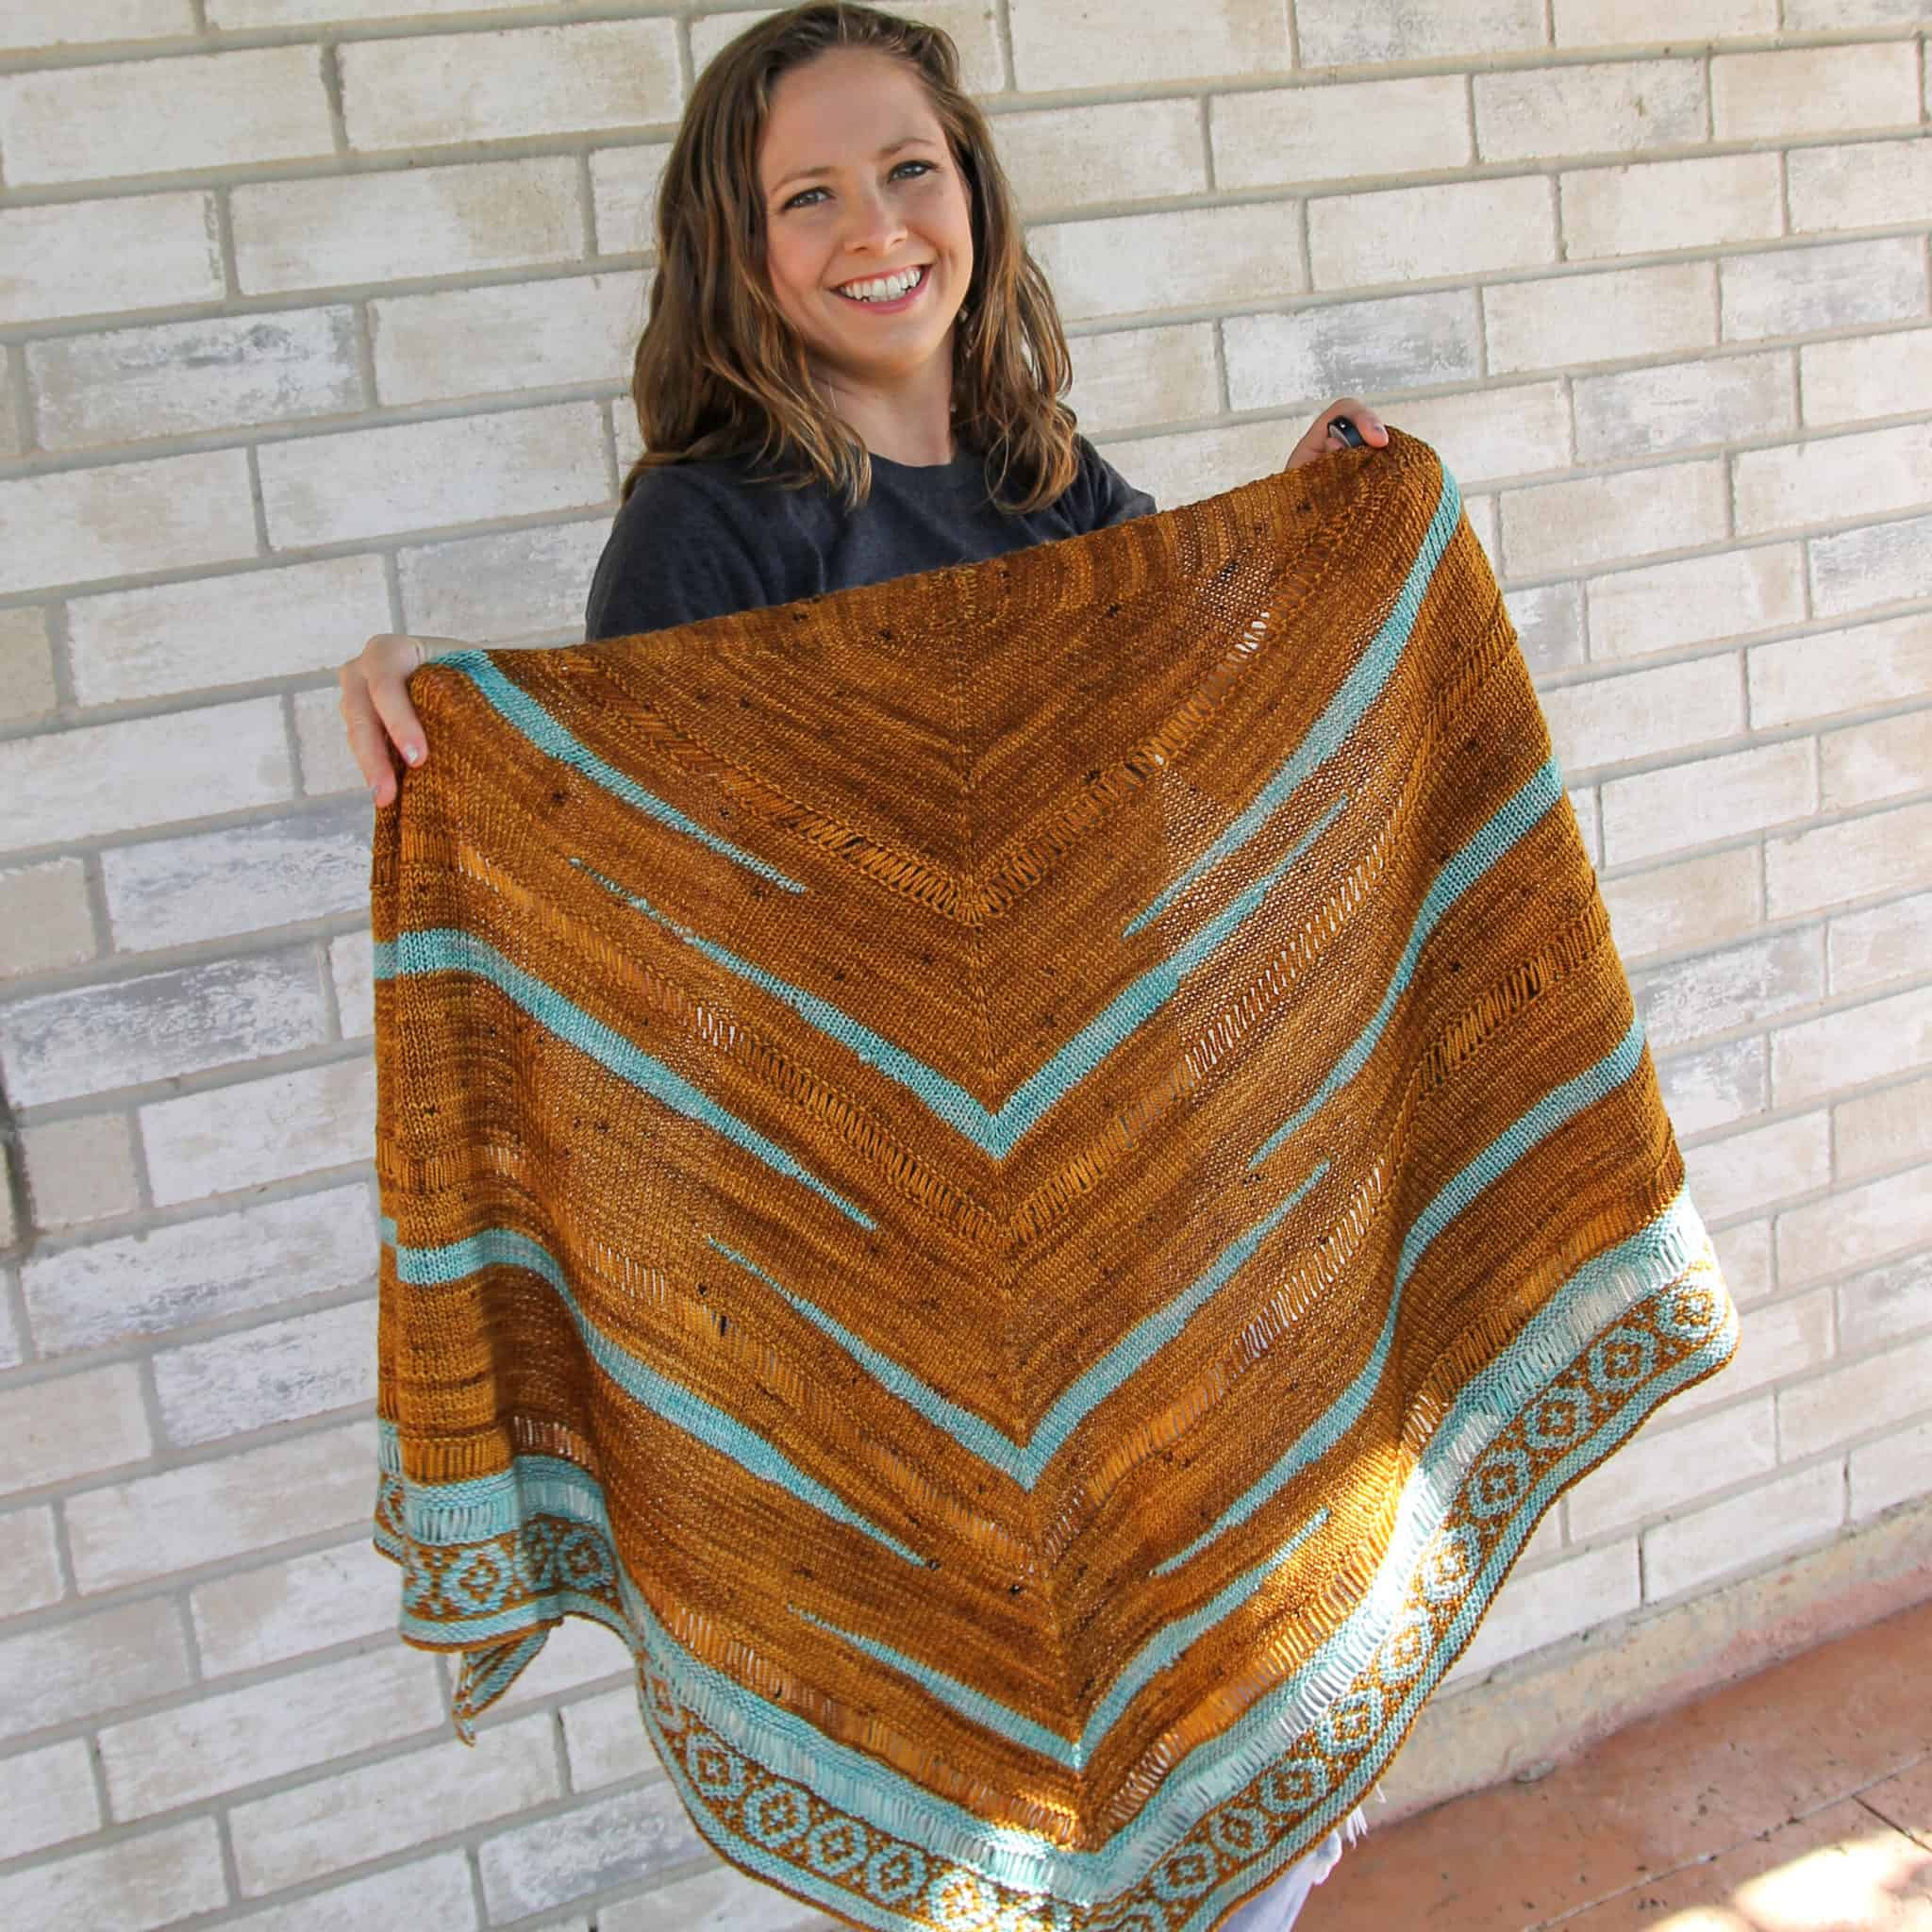 A woman holds up a gold and turquoise triangular shawl.